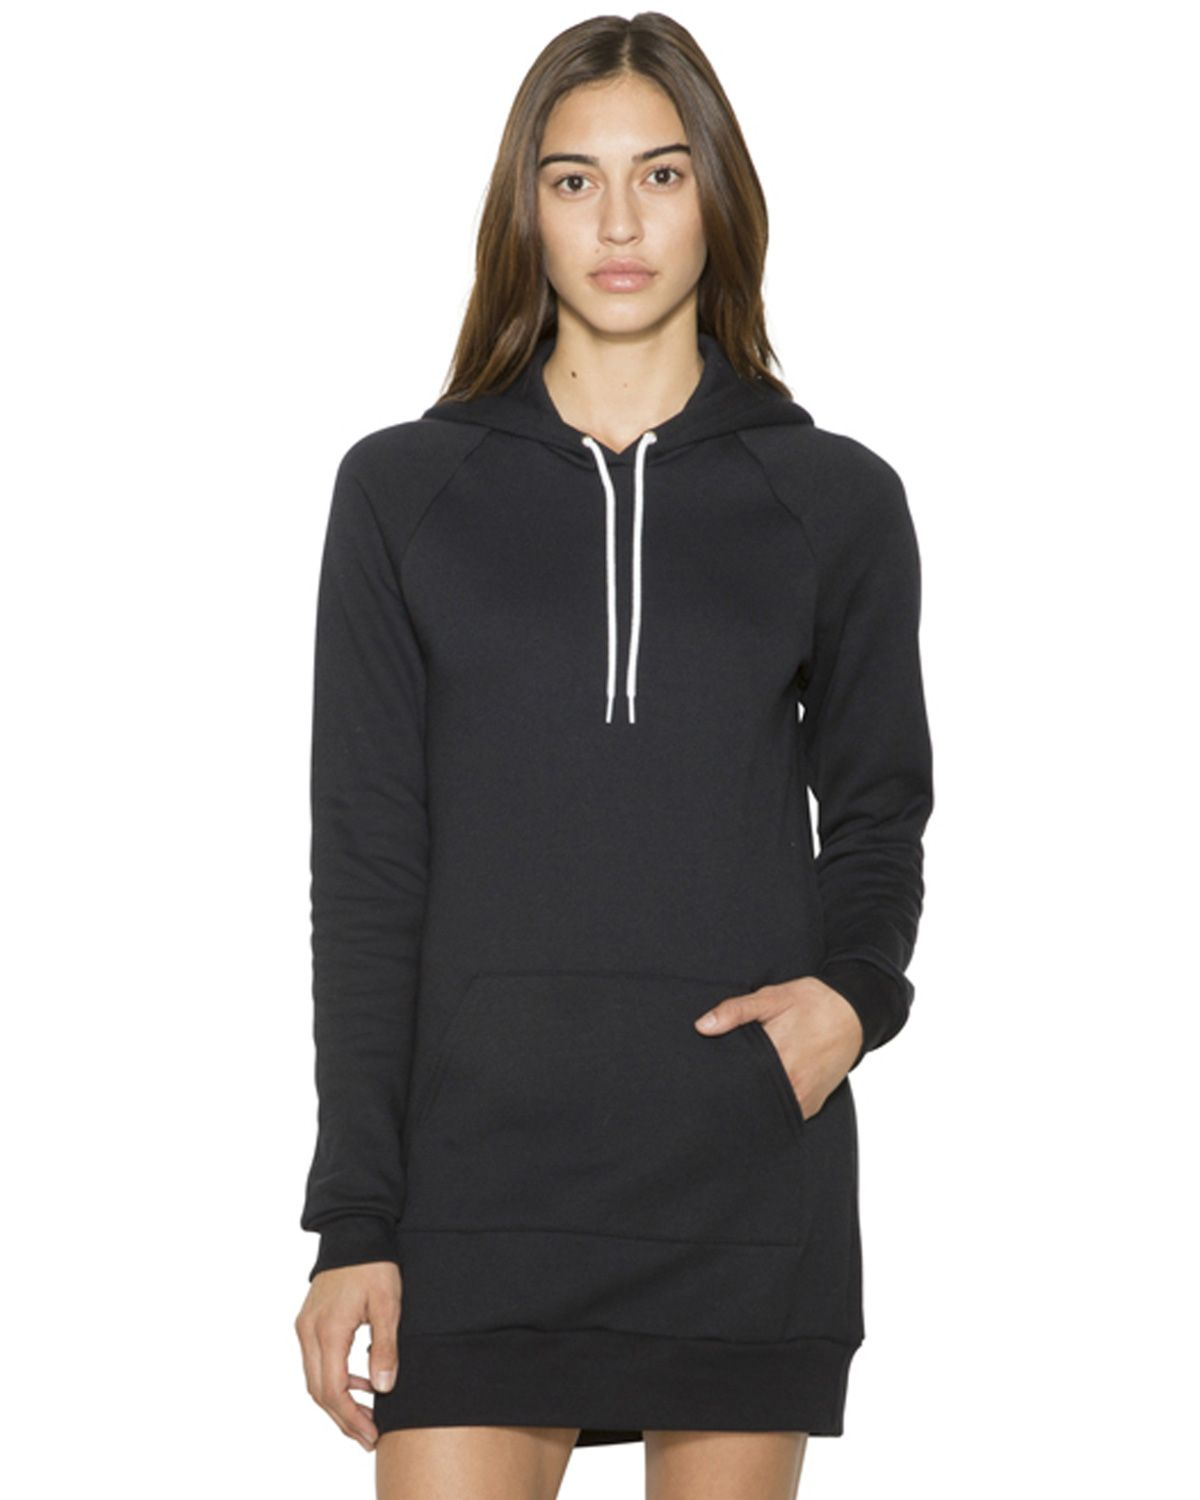 American Apparel SAF398W Women's Flex Fleece Hooded Dress